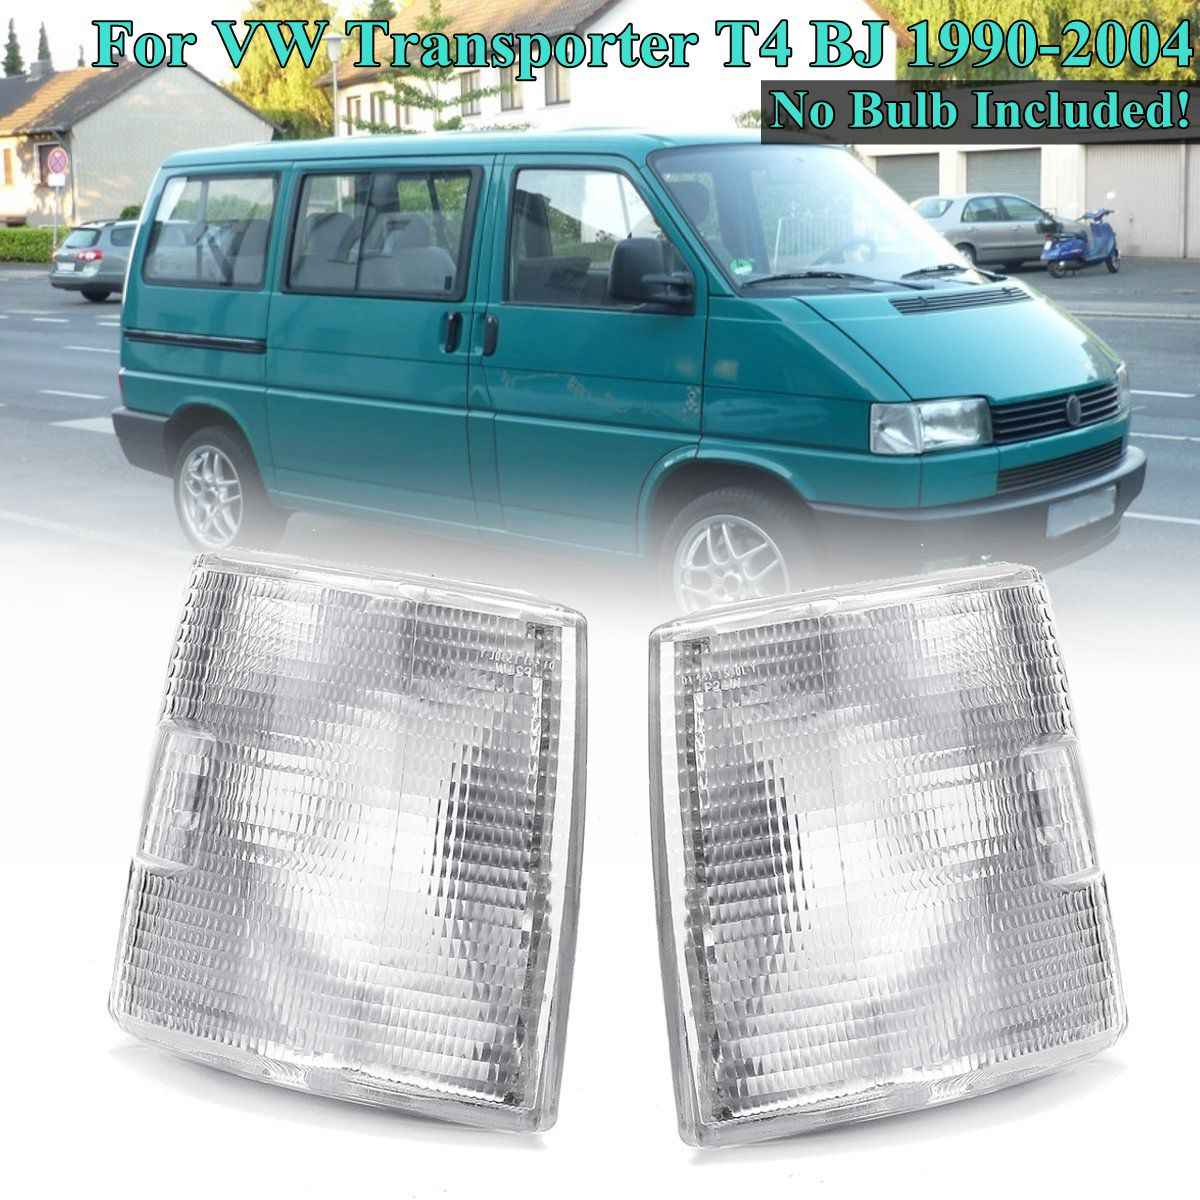 medium resolution of 1 pair front corner lights indicator signal lamps for vw transporter t4 1990 1991 1992 1993